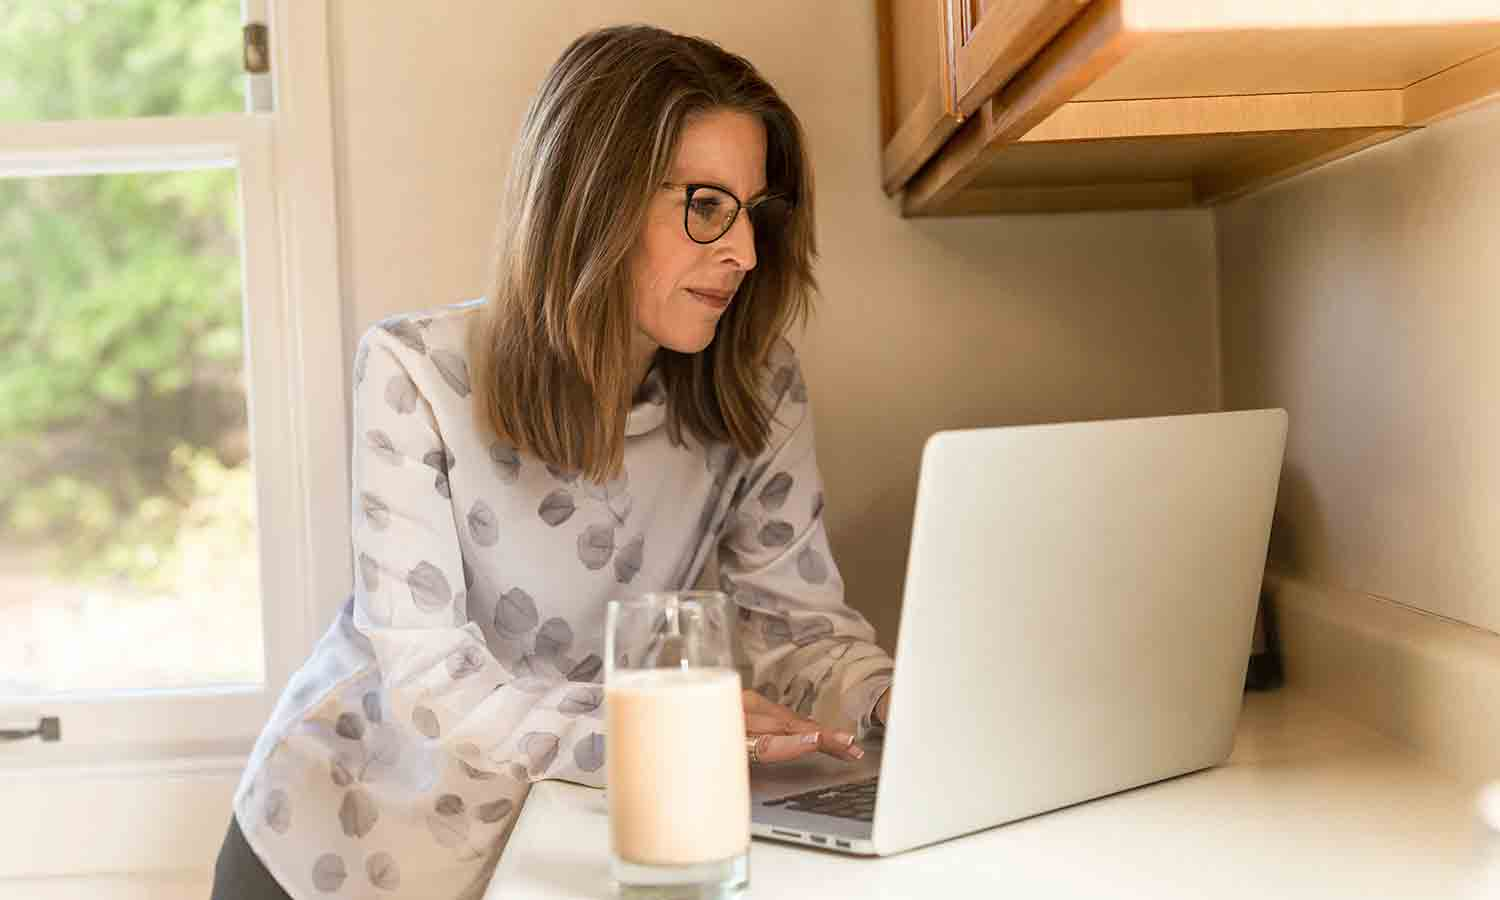 woman using the internet inside her house